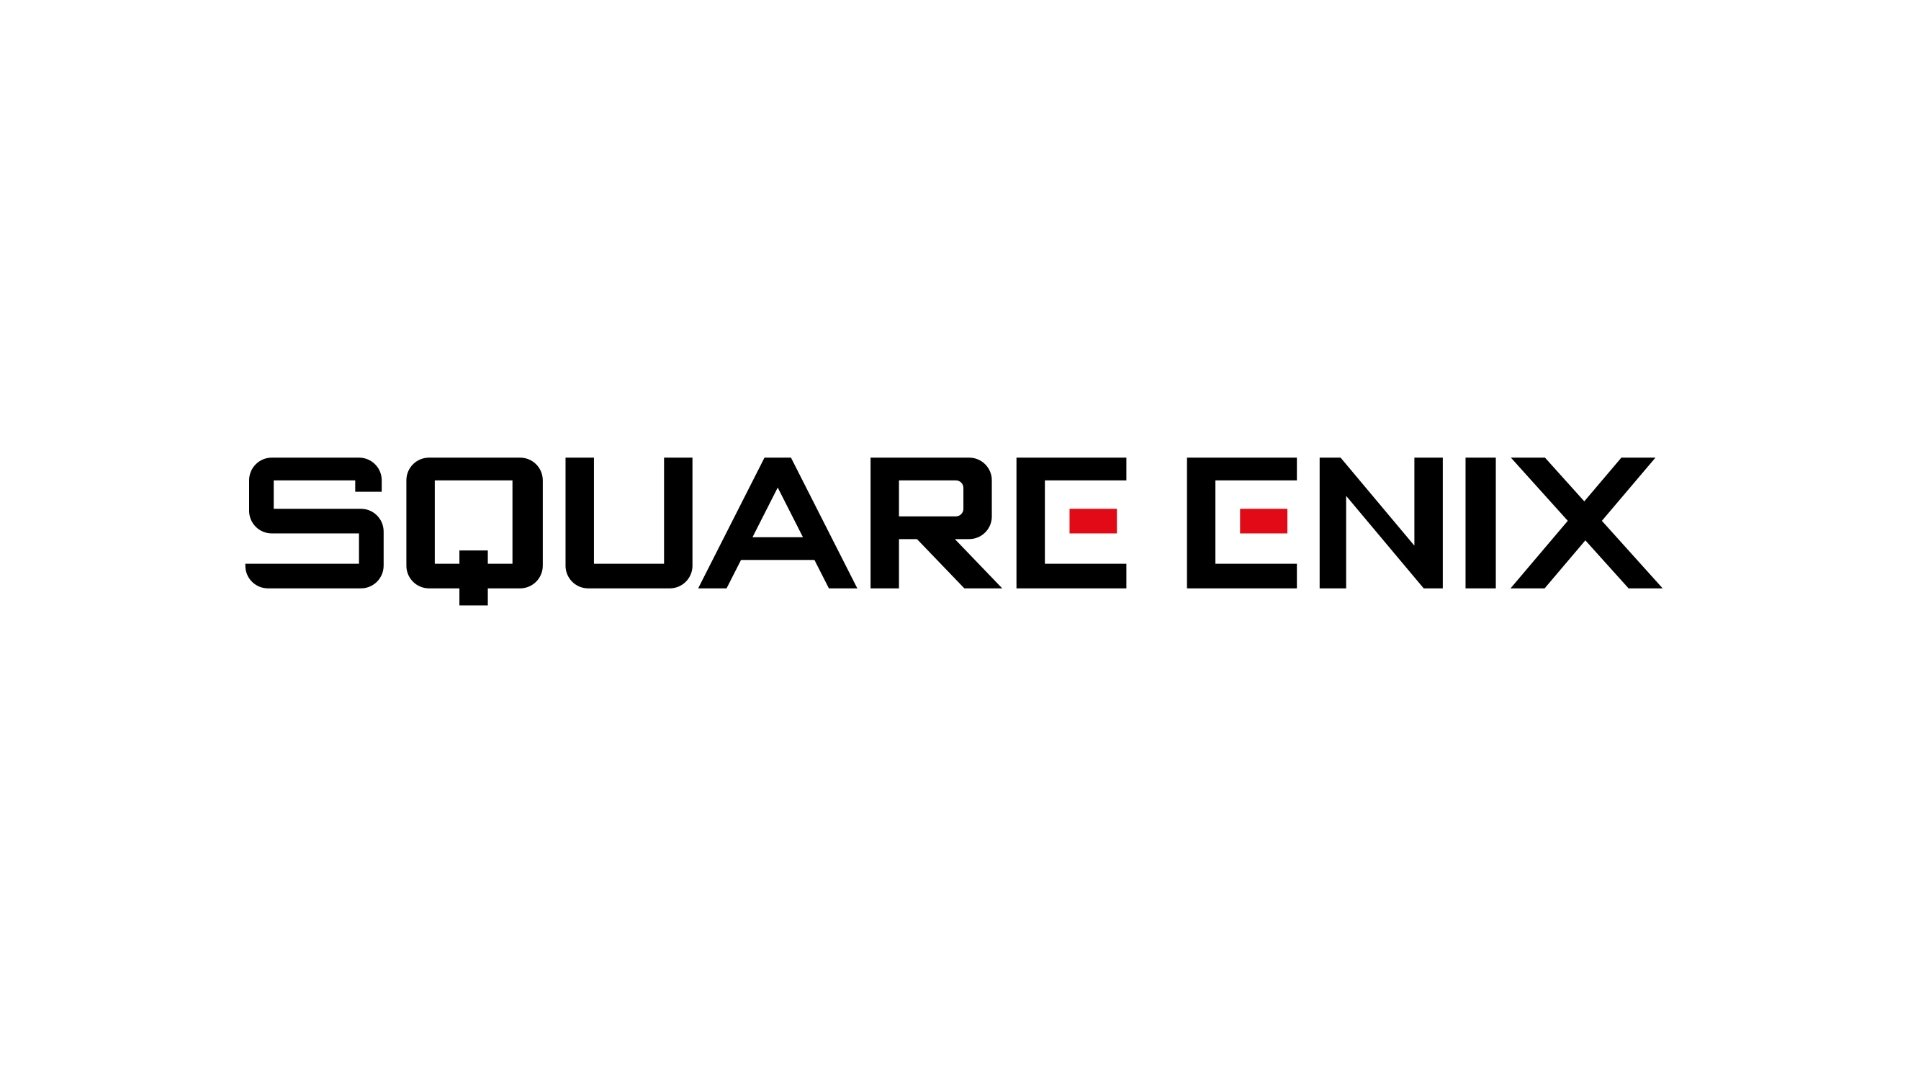 Square Enix Acquisition Rumors: That's what the publisher says